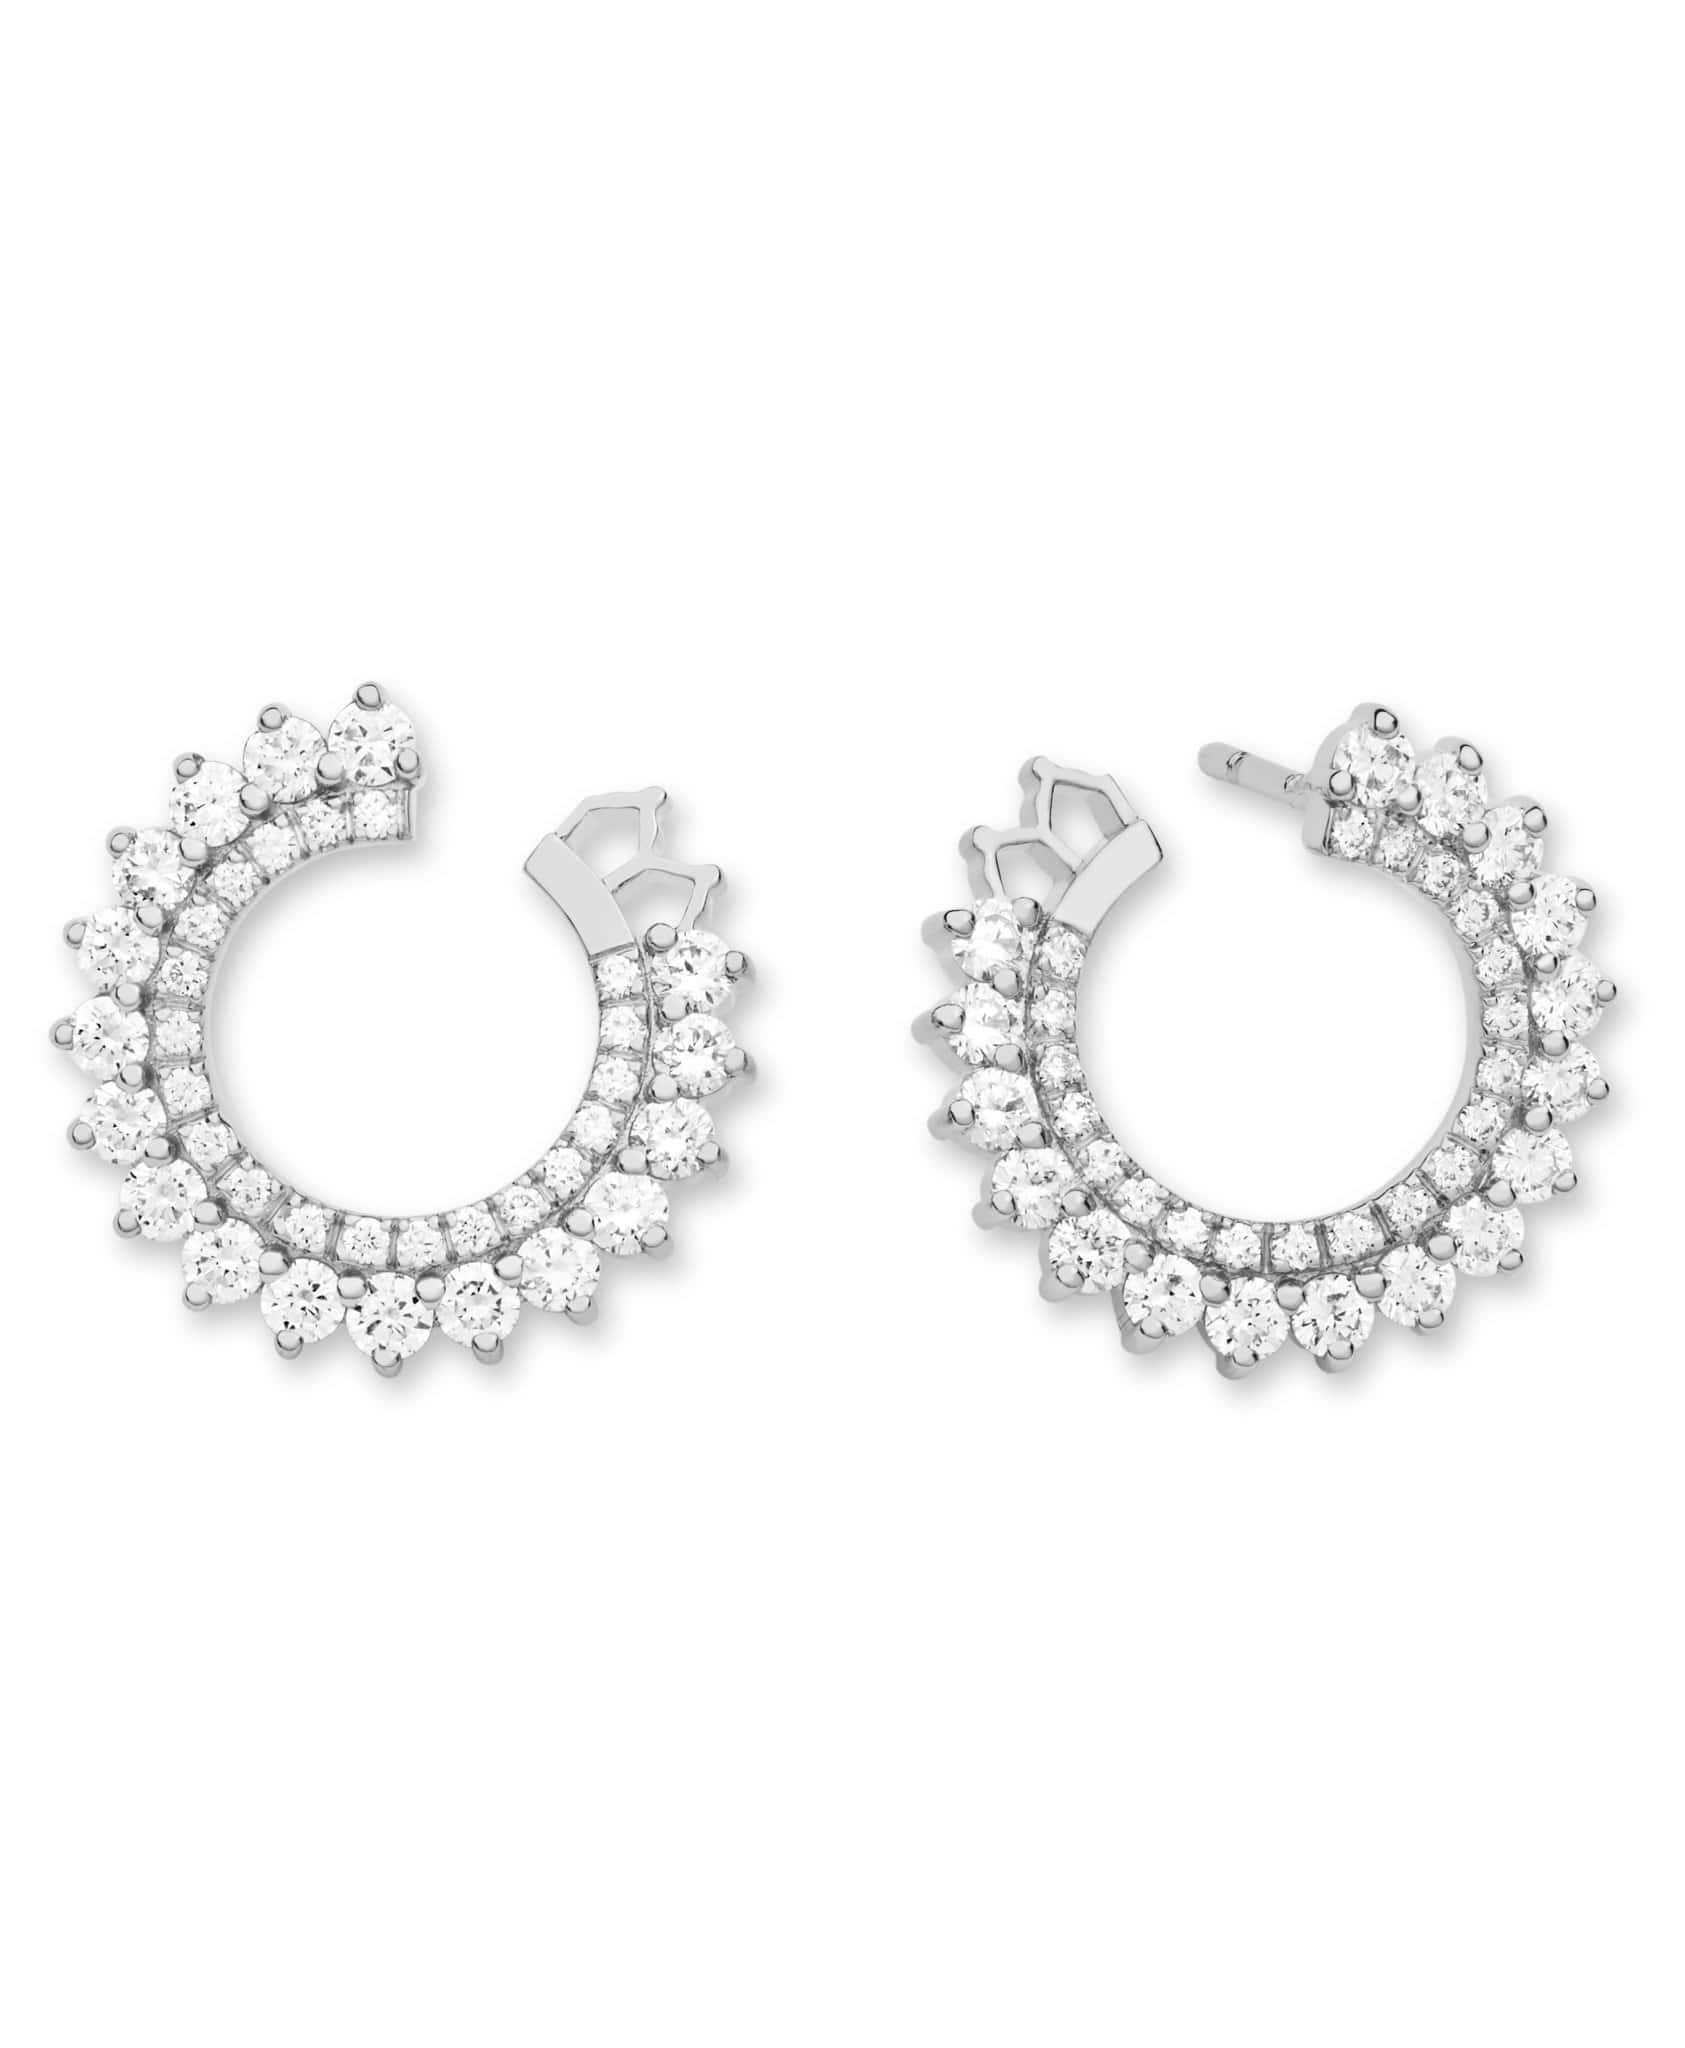 Double Diamond Earrings: Discover Luxury Fine Jewelry | Nouvel Heritage || White Gold